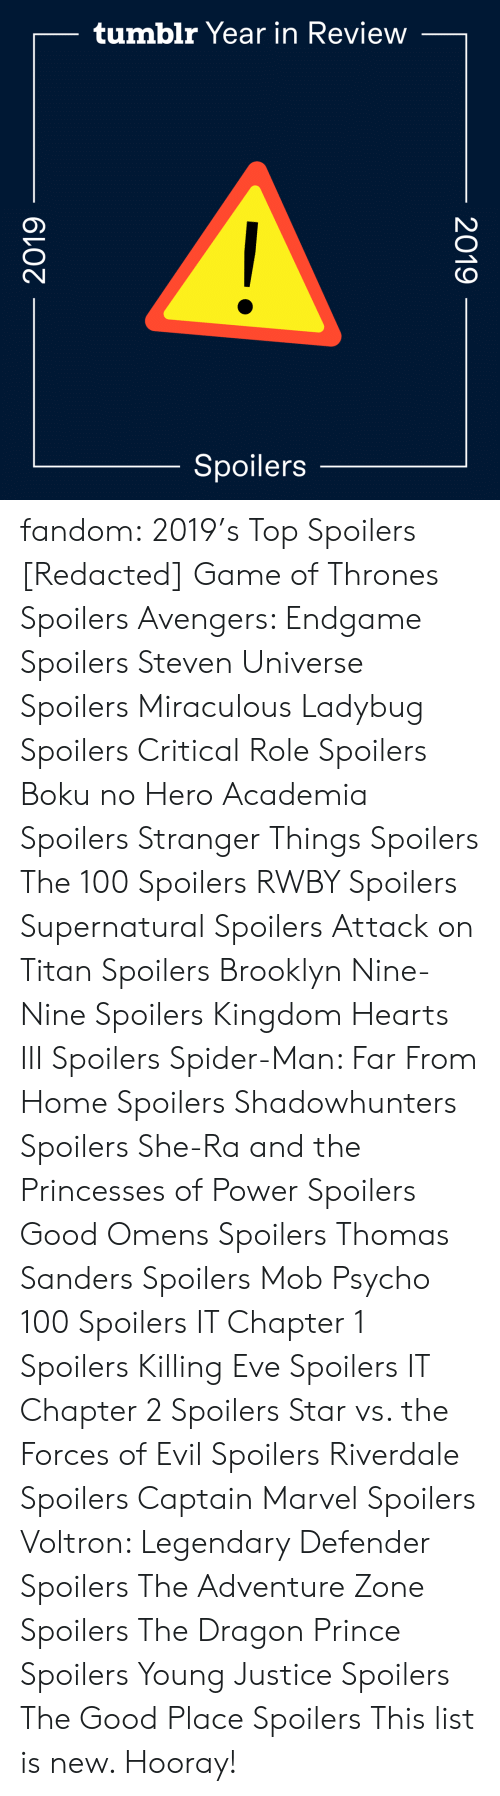 Avengers: tumblr Year in Review  Spoilers  2019  2019 fandom:  2019's Top Spoilers  [Redacted]  Game of Thrones Spoilers  Avengers: Endgame Spoilers  Steven Universe Spoilers  Miraculous Ladybug Spoilers  Critical Role Spoilers  Boku no Hero Academia Spoilers  Stranger Things Spoilers  The 100 Spoilers  RWBY Spoilers  Supernatural Spoilers  Attack on Titan Spoilers  Brooklyn Nine-Nine Spoilers  Kingdom Hearts III Spoilers  Spider-Man: Far From Home Spoilers  Shadowhunters Spoilers  She-Ra and the Princesses of Power Spoilers  Good Omens Spoilers  Thomas Sanders Spoilers  Mob Psycho 100 Spoilers  IT Chapter 1 Spoilers  Killing Eve Spoilers  IT Chapter 2 Spoilers  Star vs. the Forces of Evil Spoilers  Riverdale Spoilers  Captain Marvel Spoilers  Voltron: Legendary Defender Spoilers  The Adventure Zone Spoilers  The Dragon Prince Spoilers  Young Justice Spoilers  The Good Place Spoilers This list is new. Hooray!